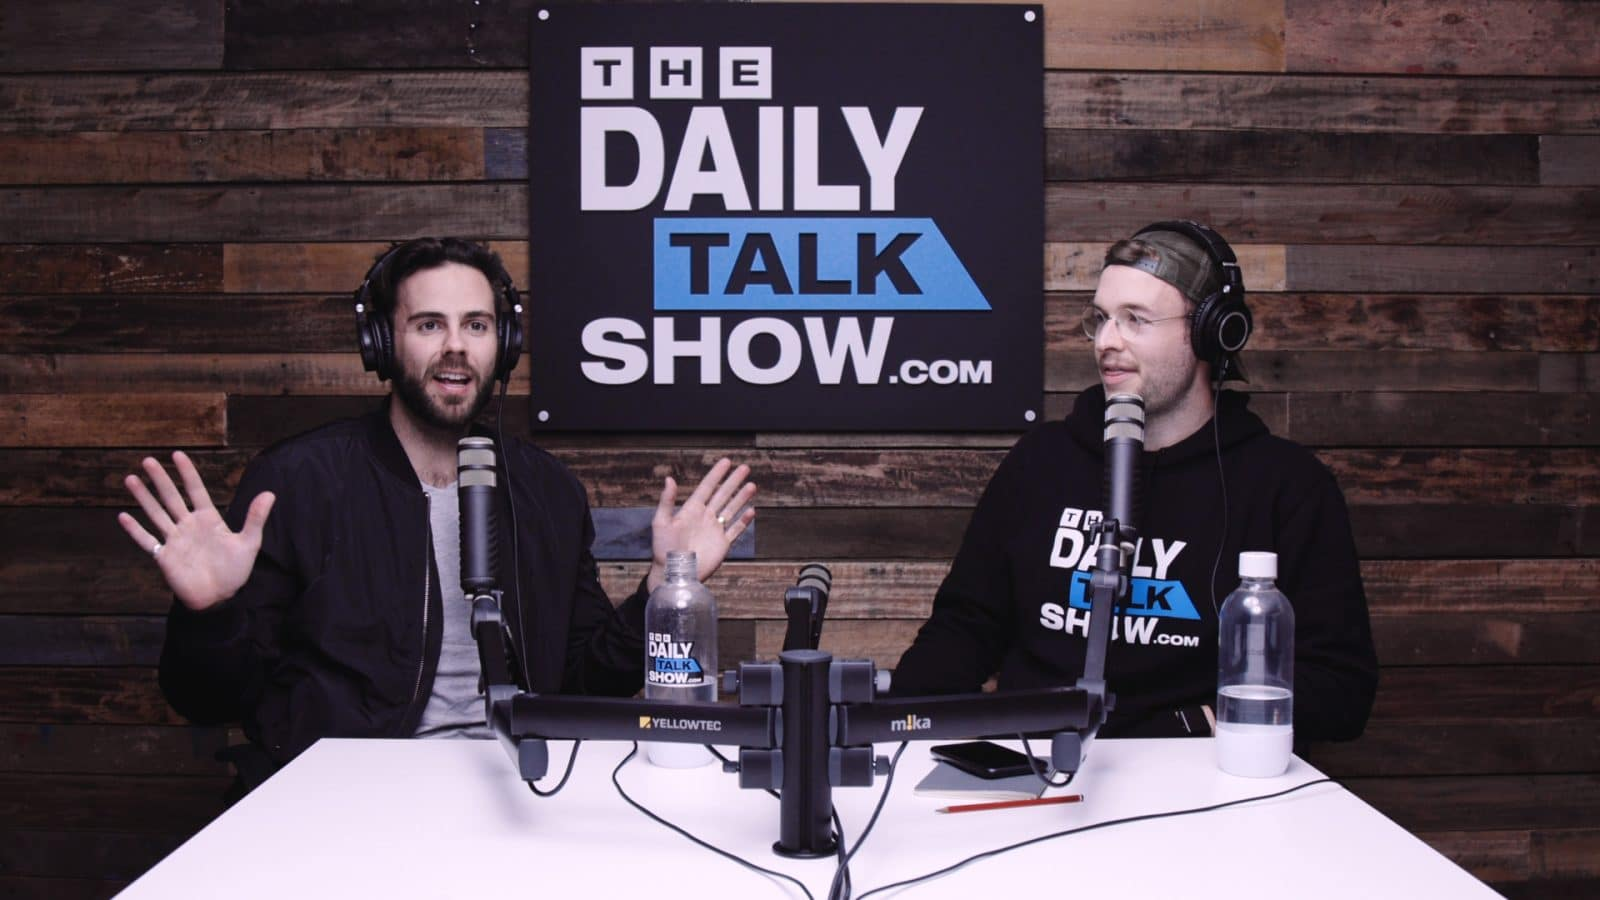 The-Daily-Talk-Show-450